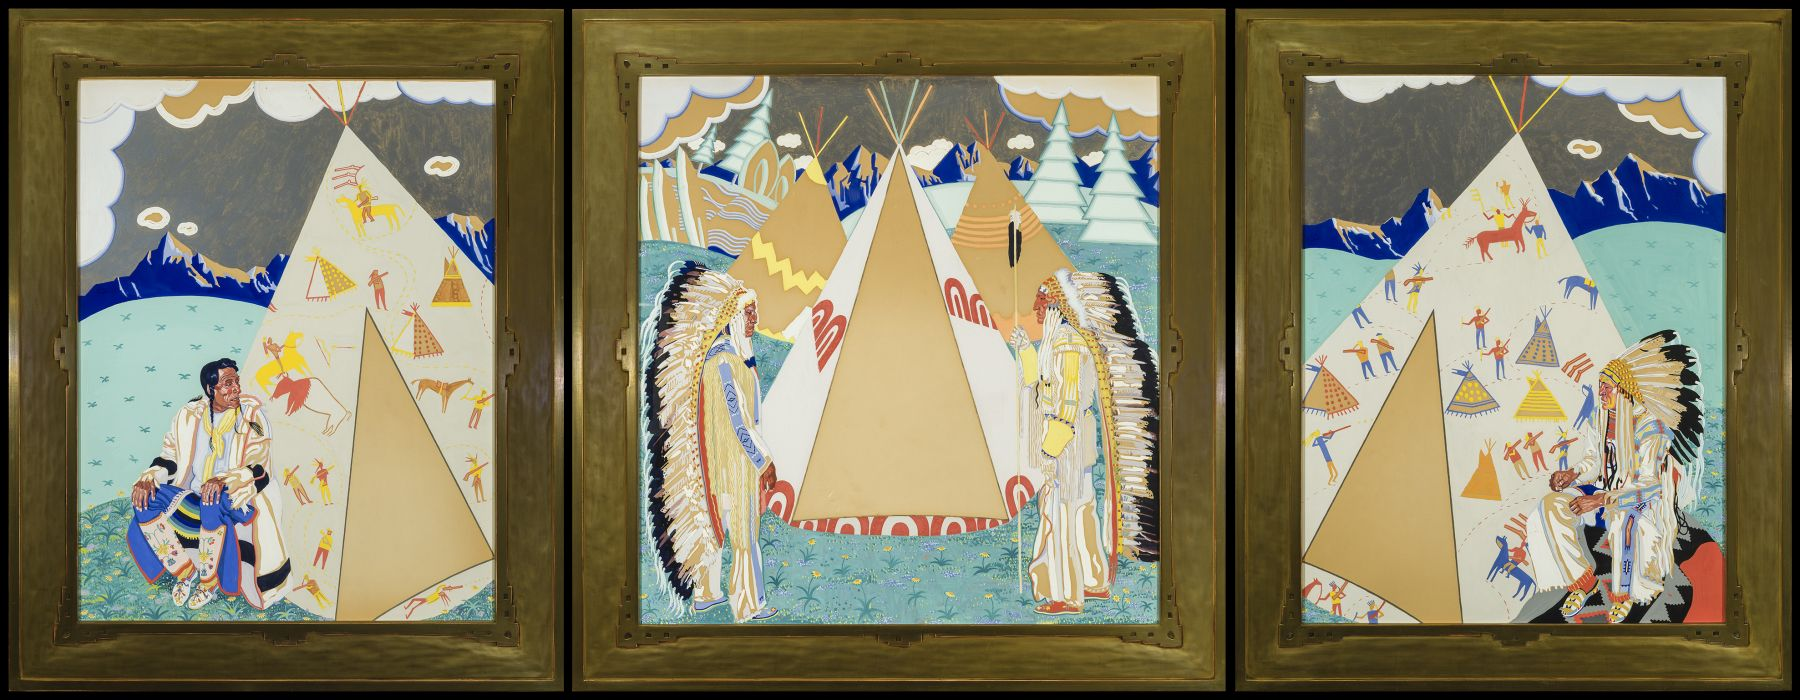 Winold Reiss (1886-1953), Triptych Design for a Mural Commission (Buffalo Hide [Eneseken, b. 1865], Bob Riding Horse, Chief Shot Both Sides [Aztua, 1874/77-1956], Mike Little Dog [Emetagua]), 1927-28